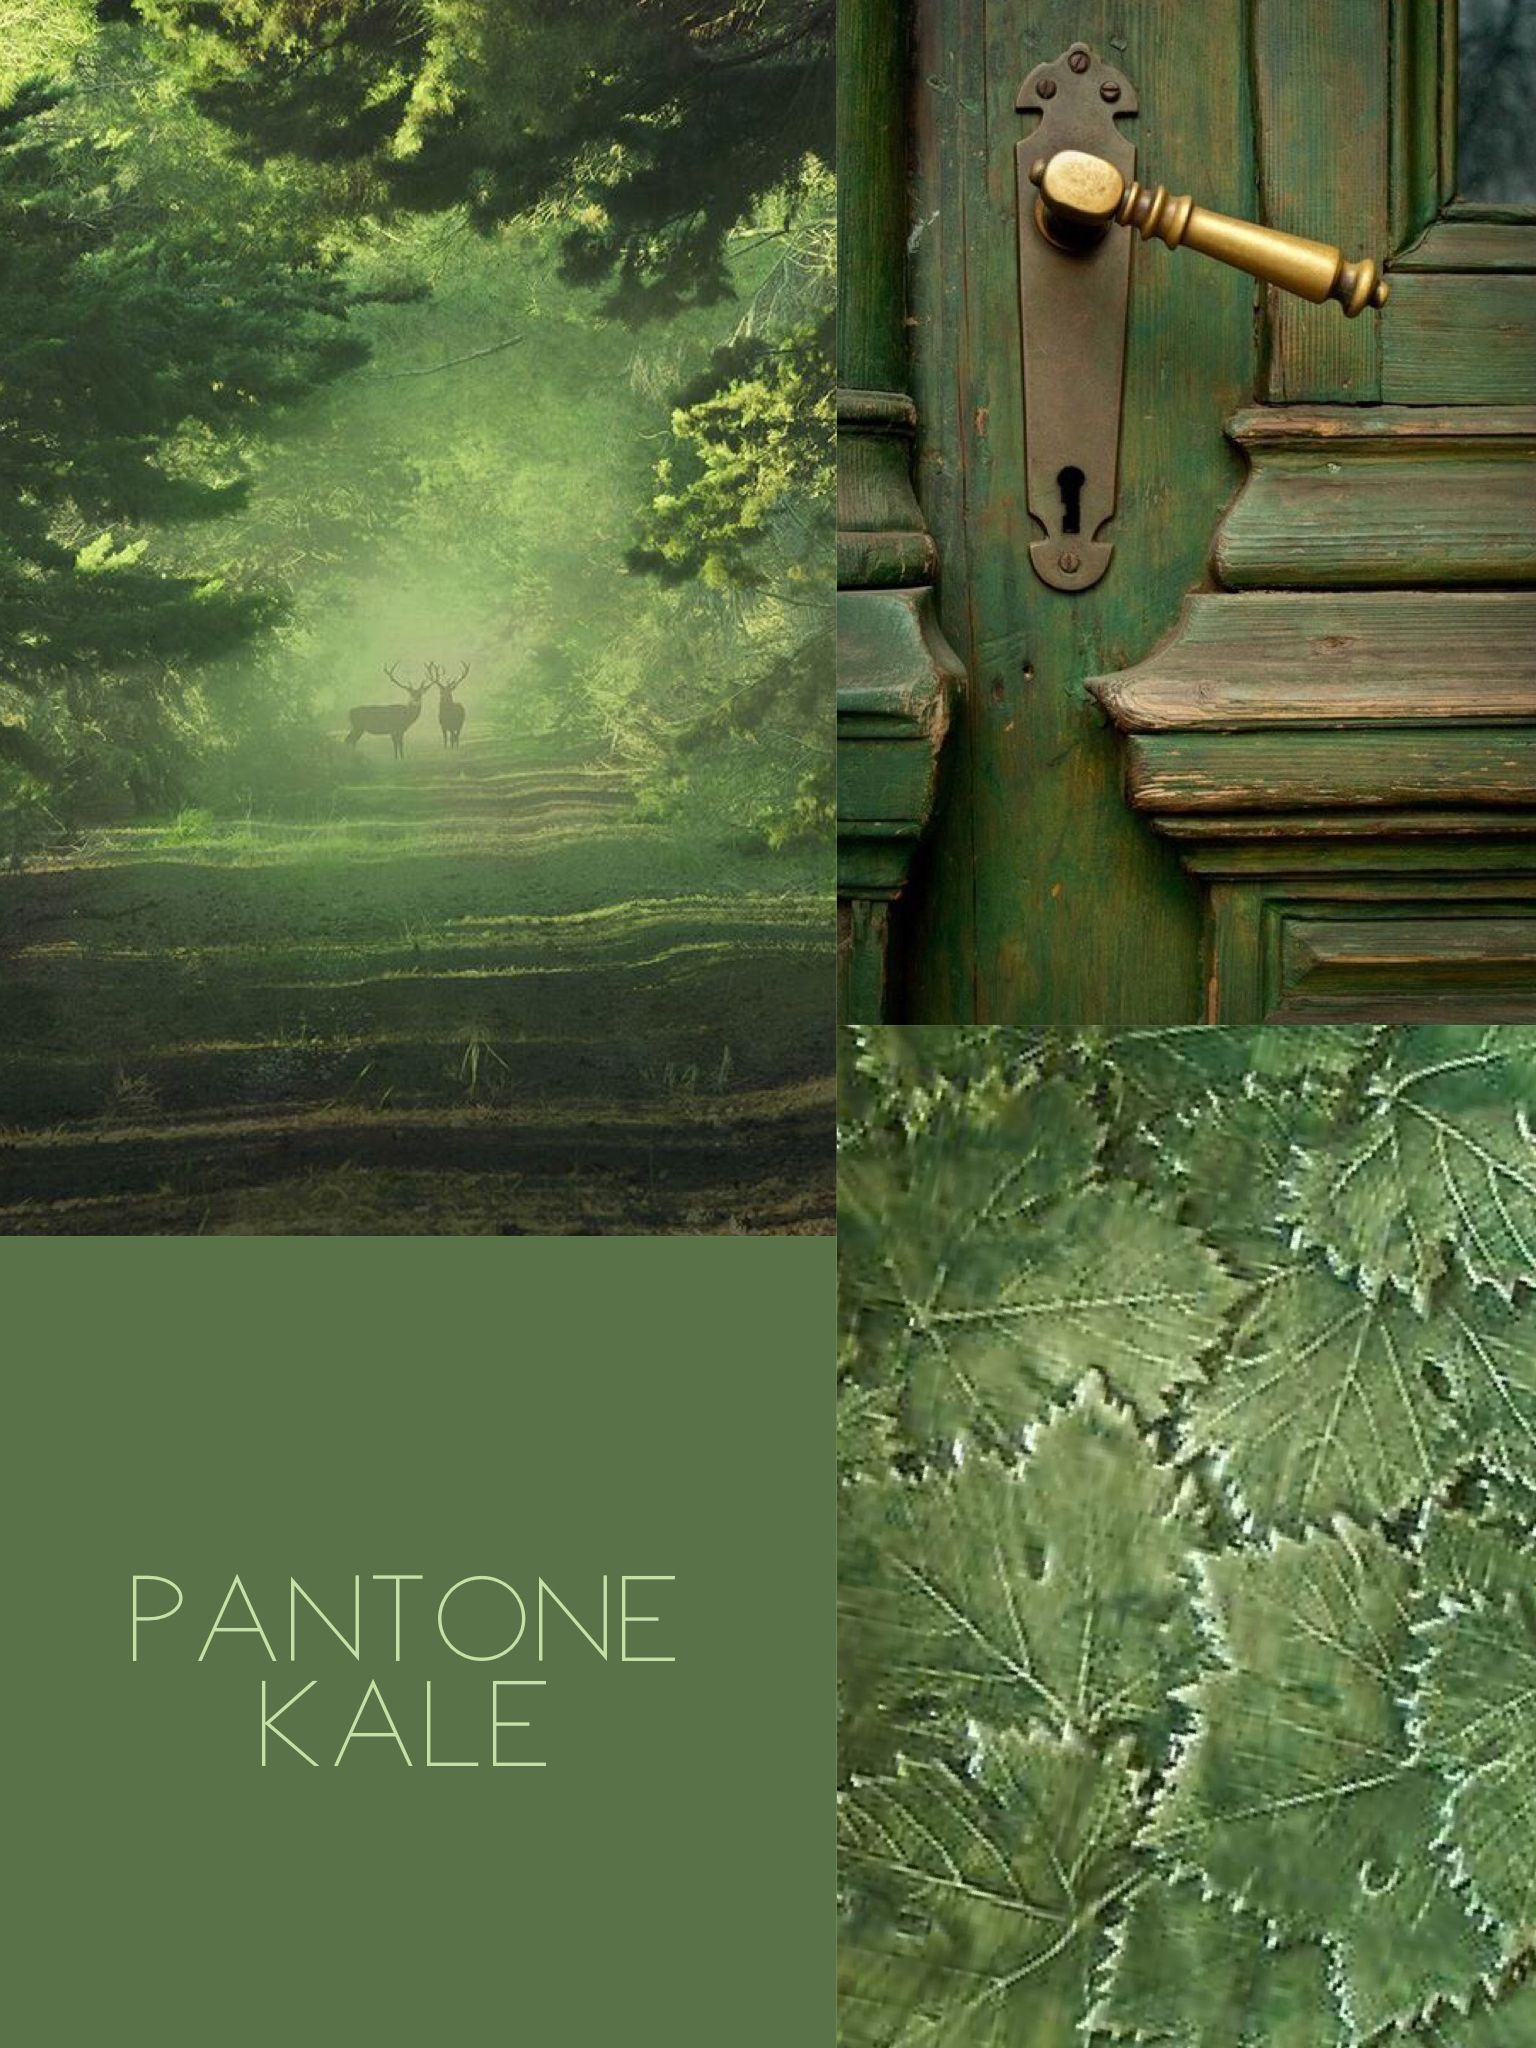 pantone kale color inspiration pinterest farben gr n and wandfarbe. Black Bedroom Furniture Sets. Home Design Ideas